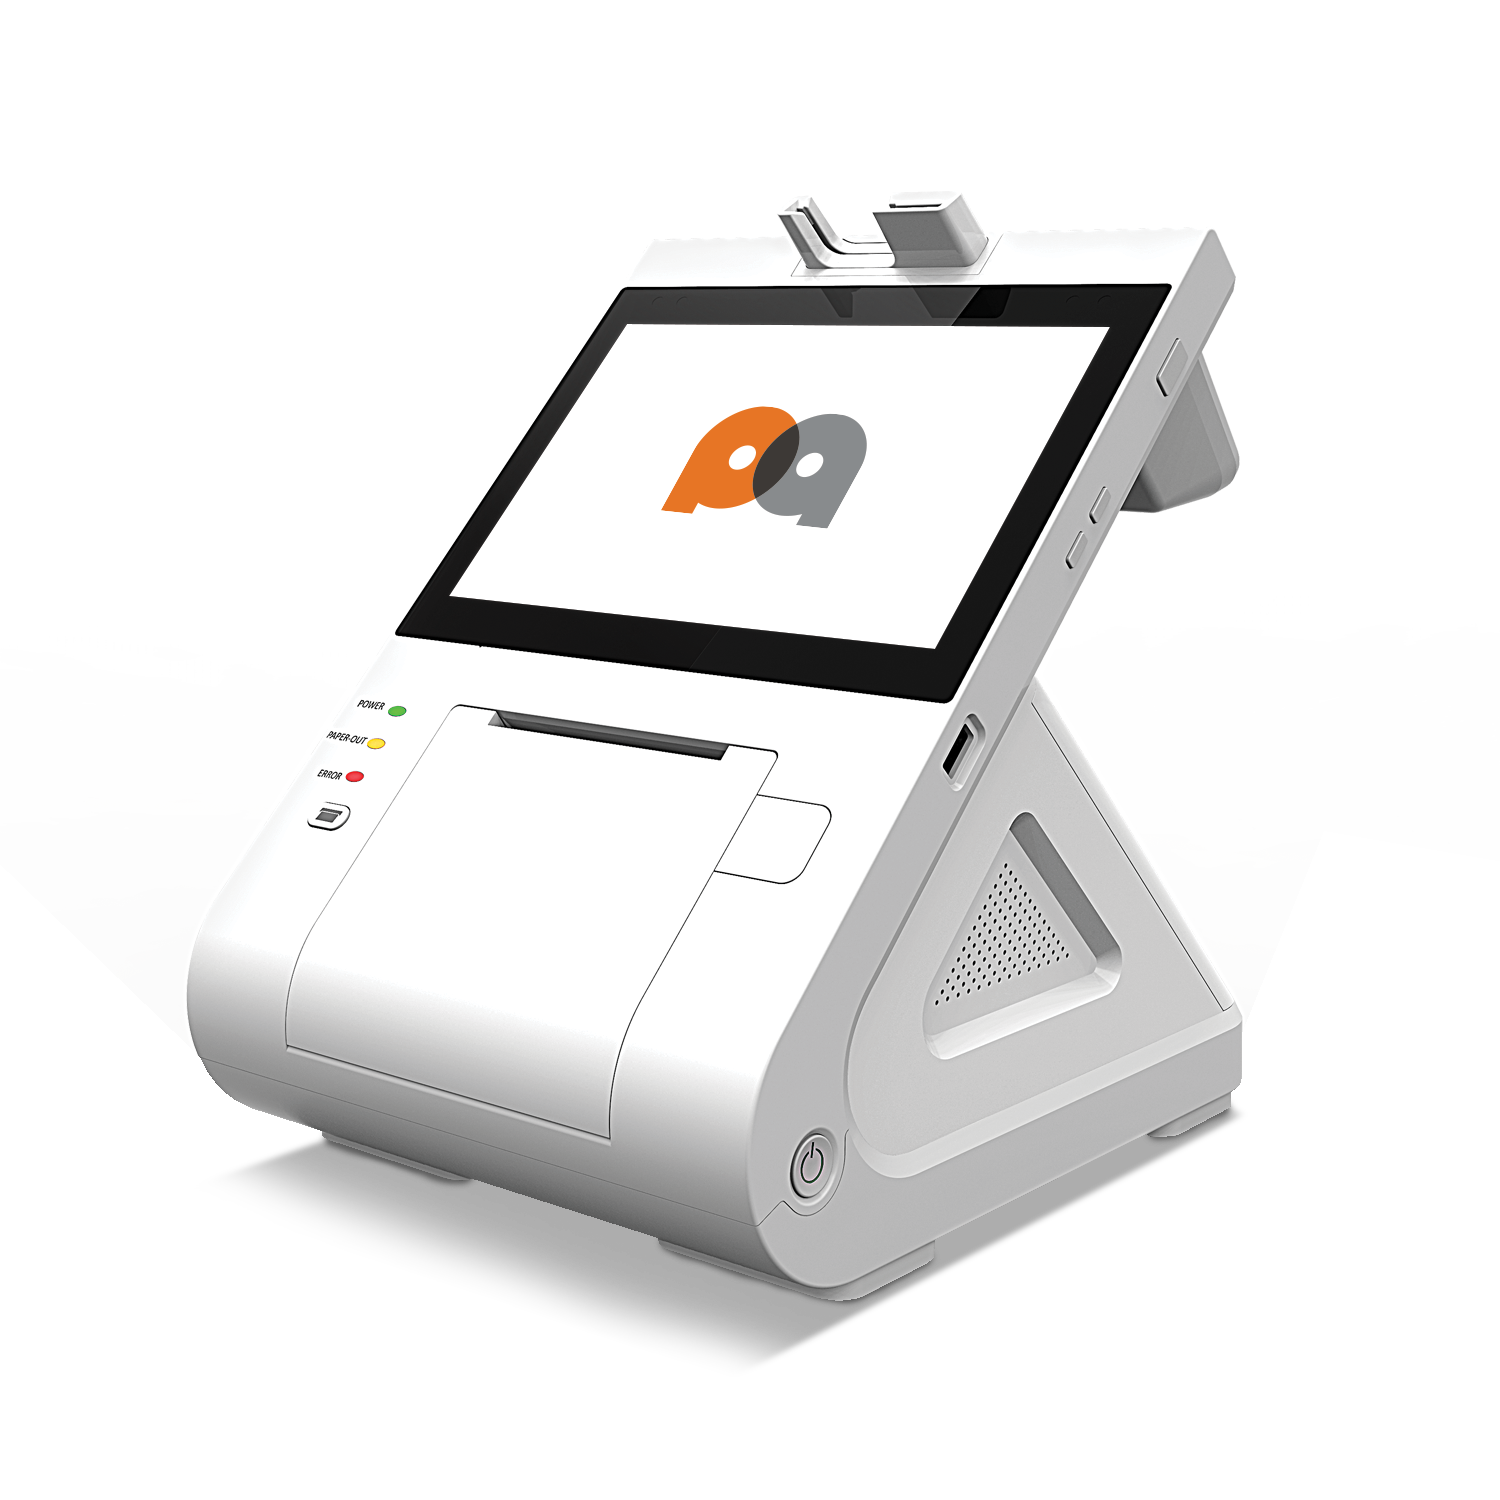 Harbortouch Echo System lowest cost of ownership for any POS System on the market